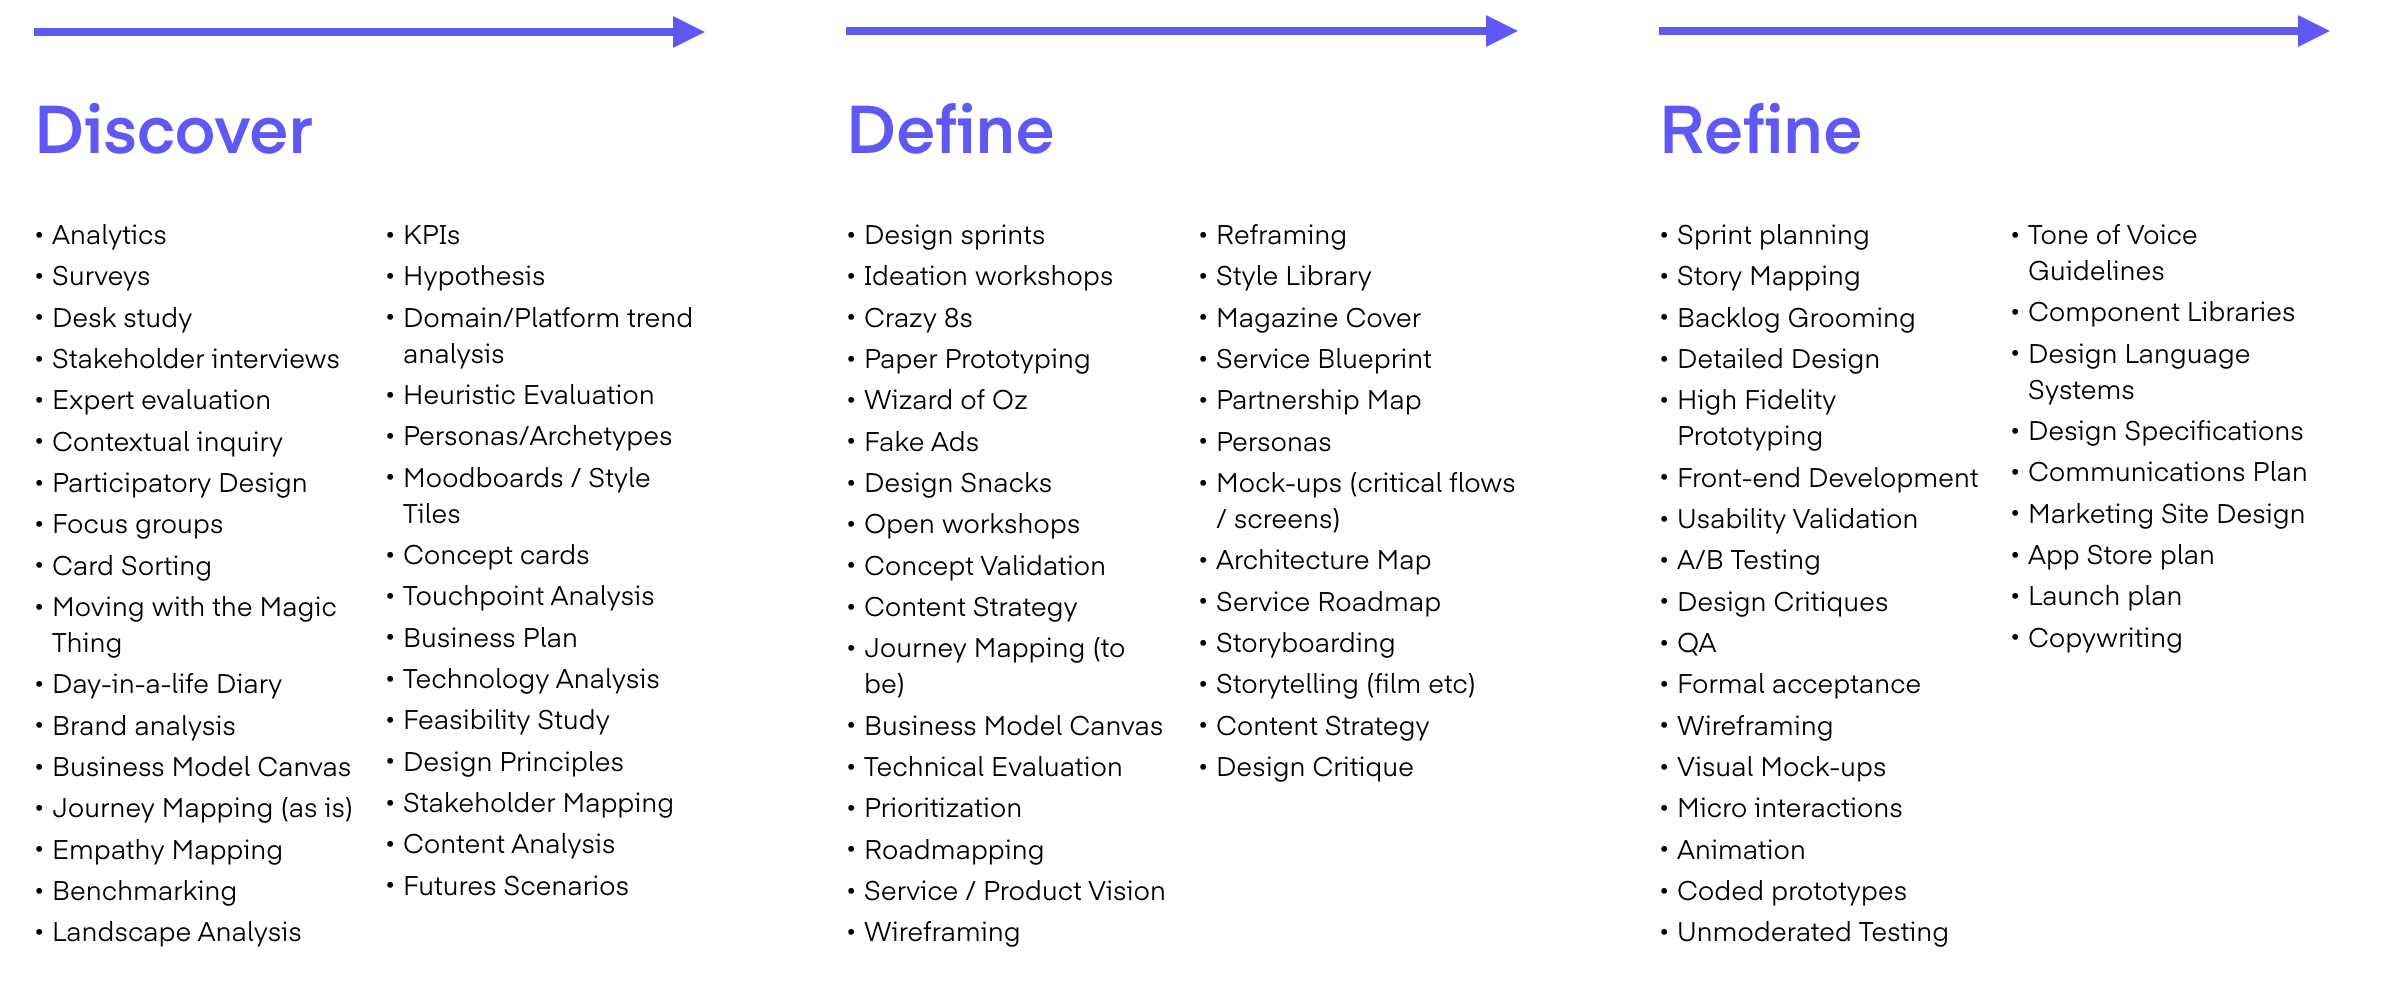 Spreading design thinking in large organizations